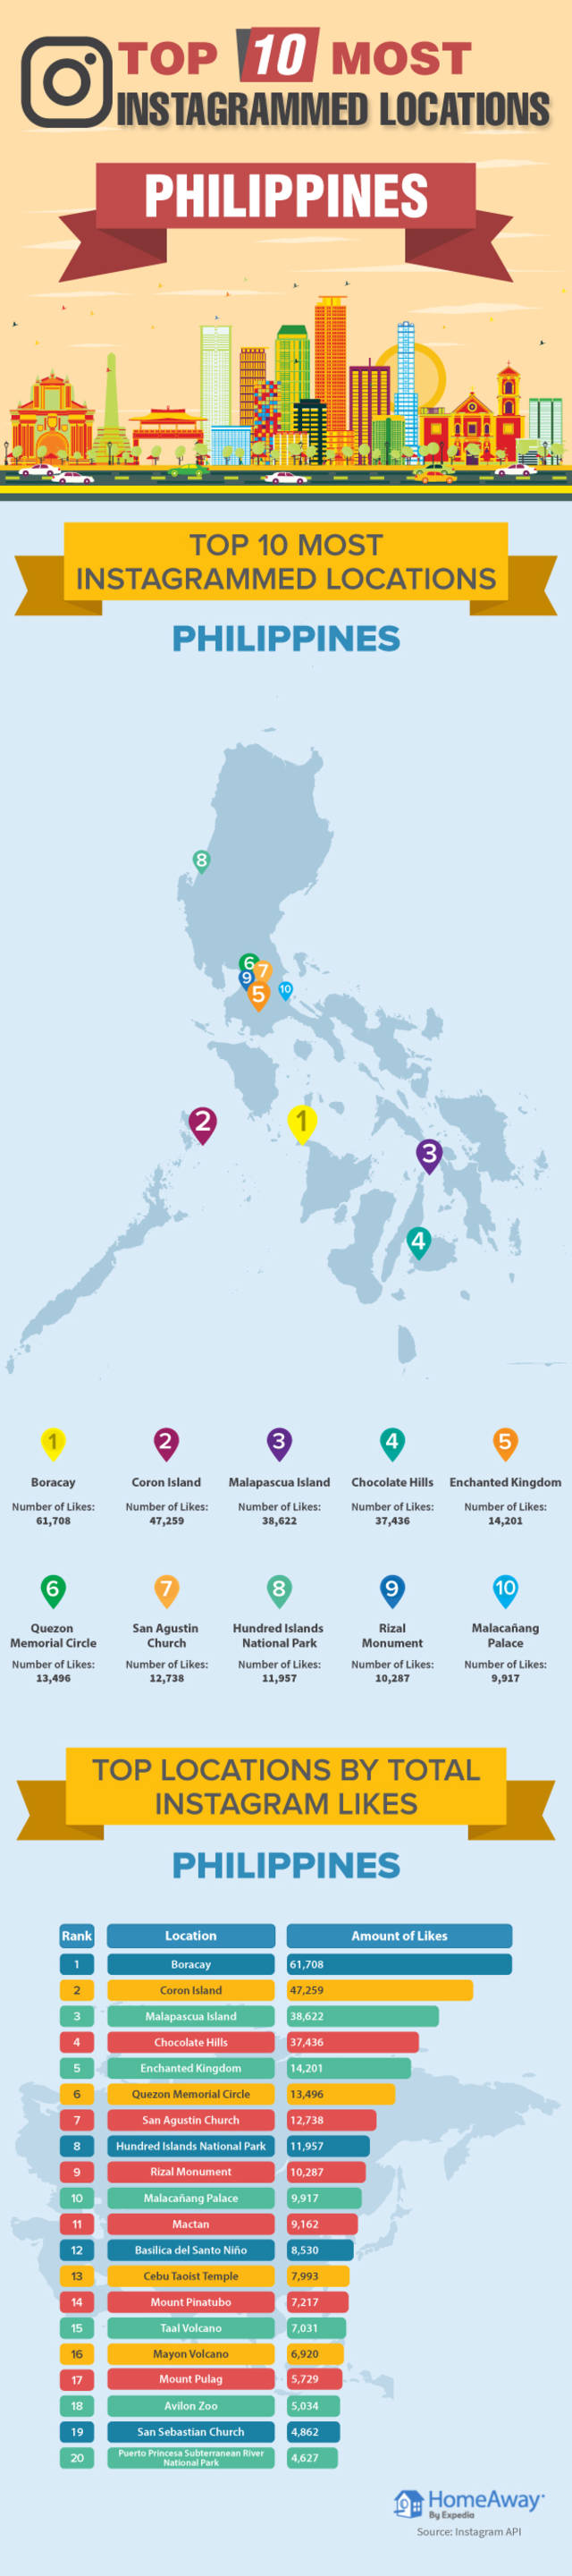 Most instagrammed locations philippines